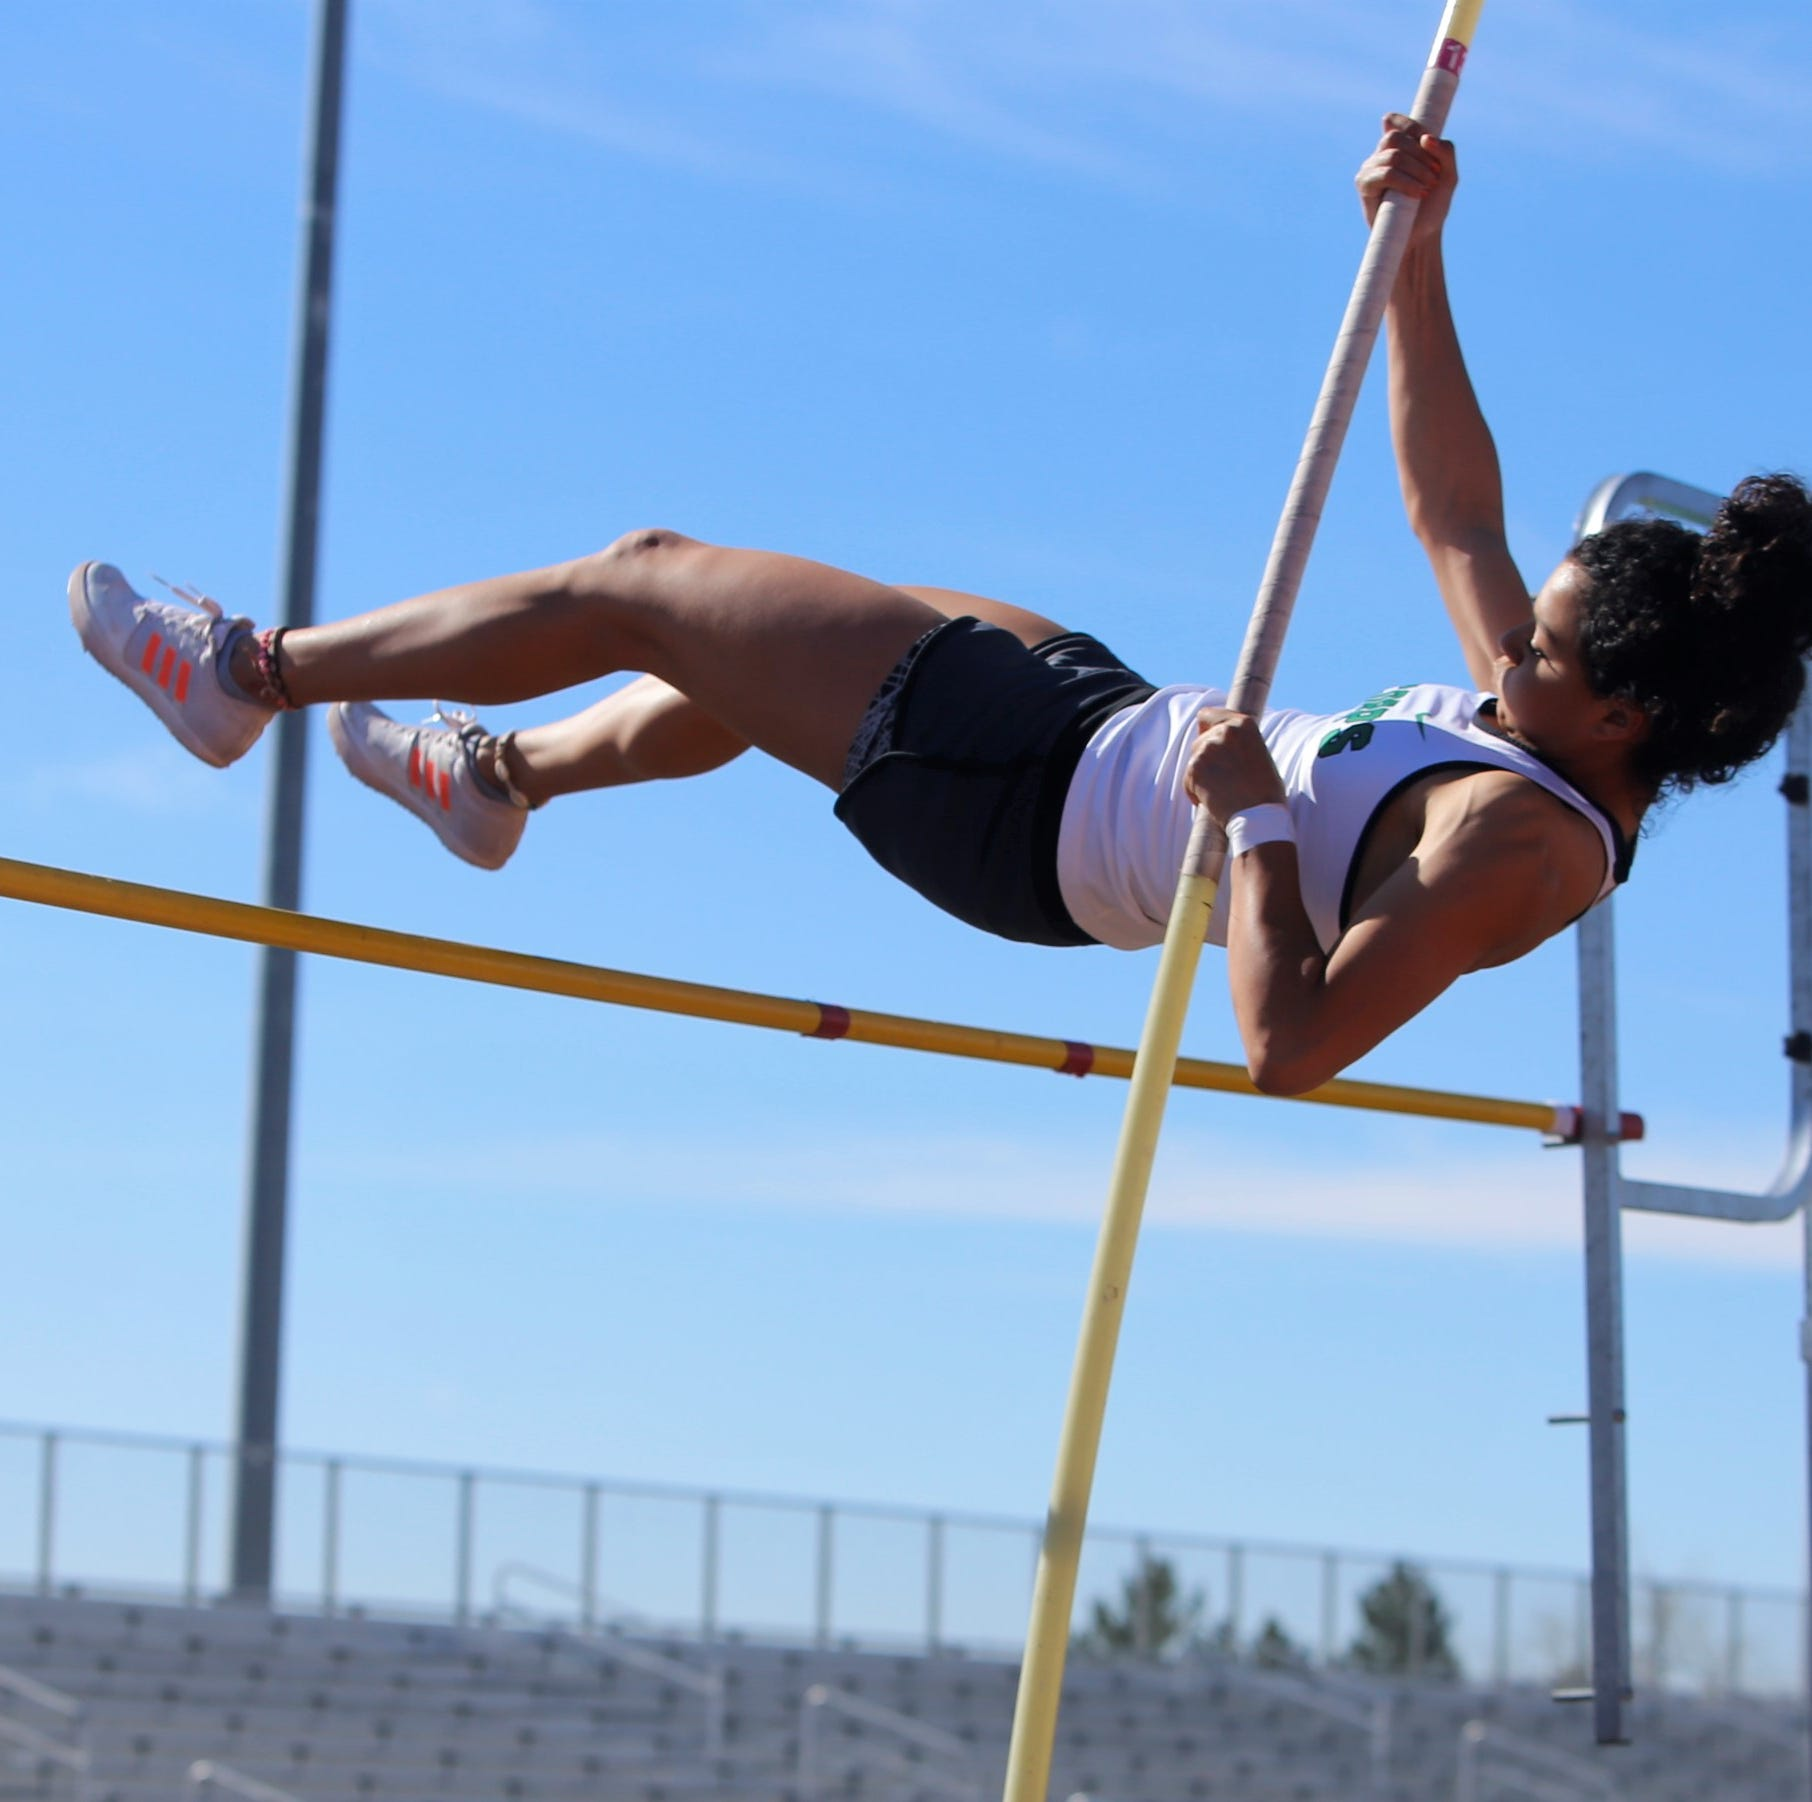 Quezada quickly closing in on pole vault record